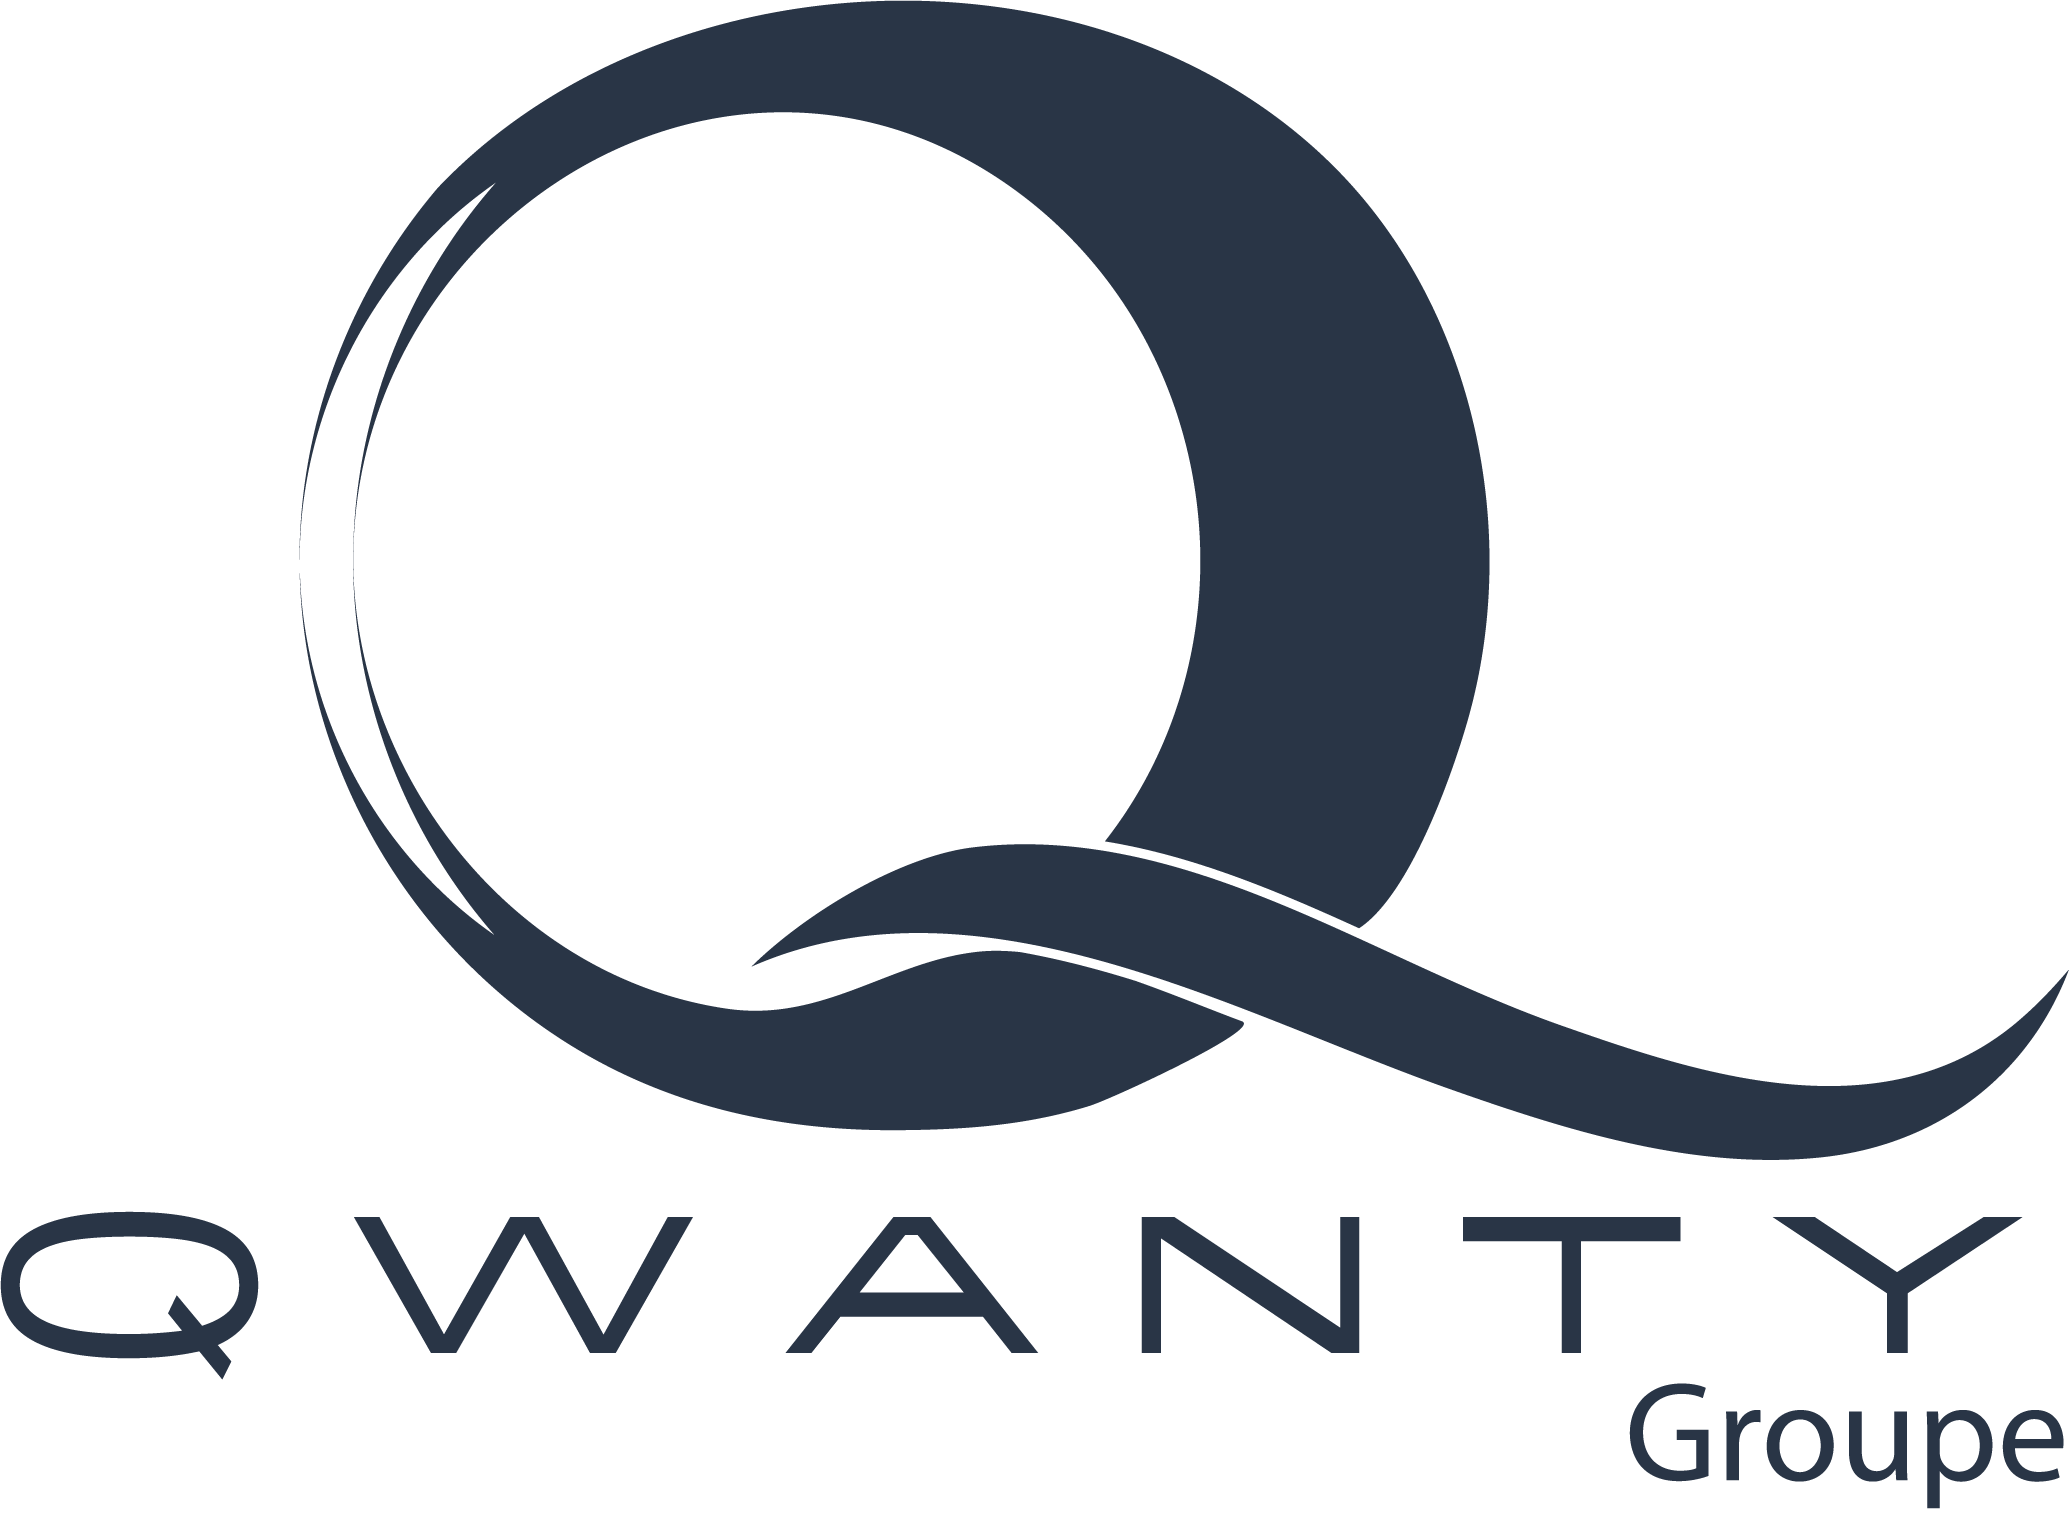 Qwanty-Groupe